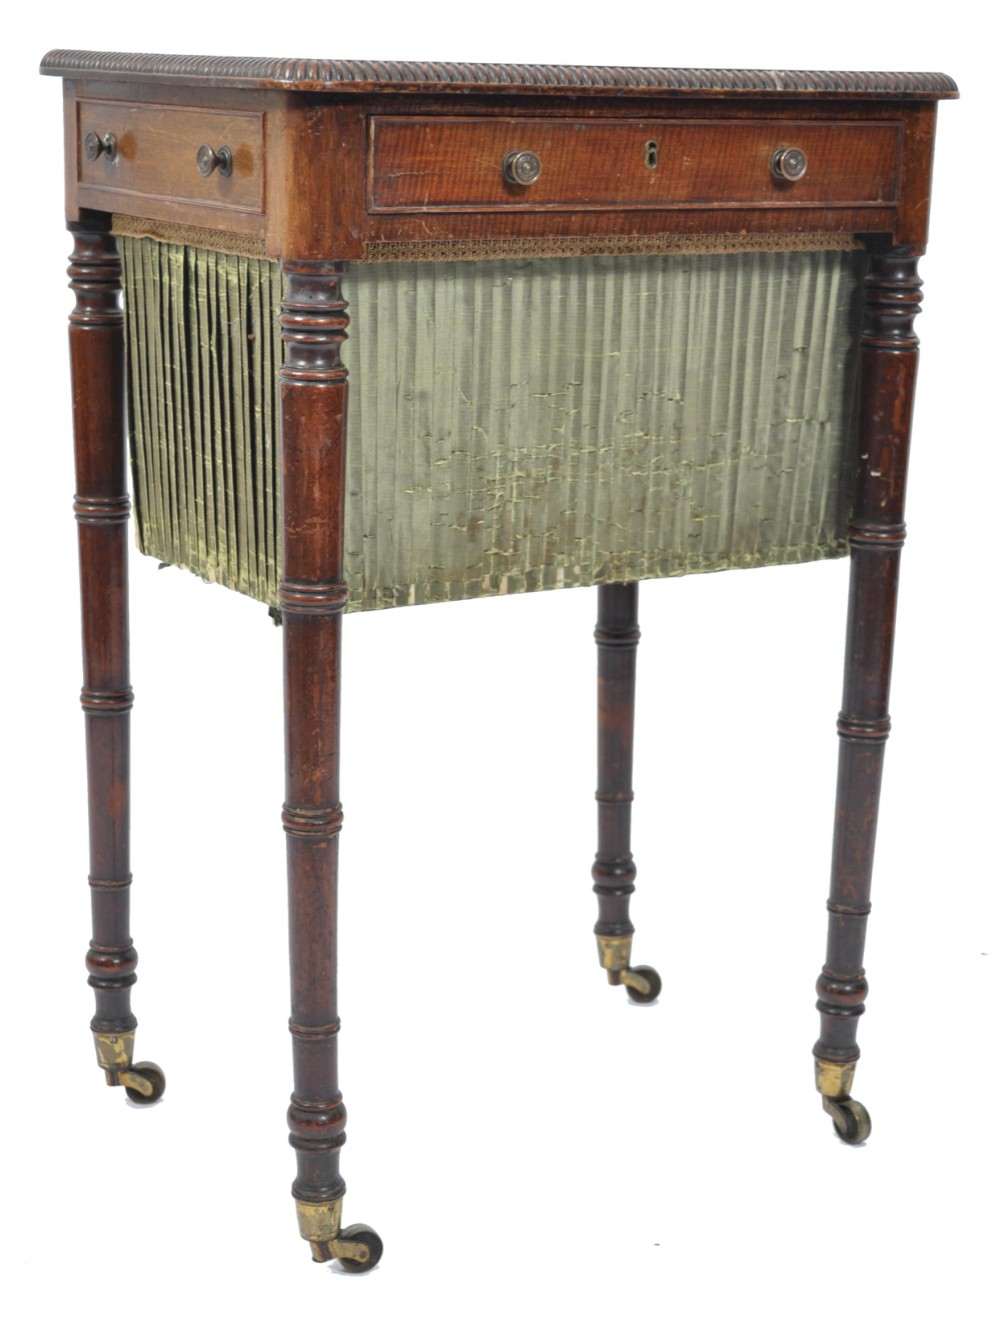 a late 18th century georgian mahogany work box table in the manner of gillows